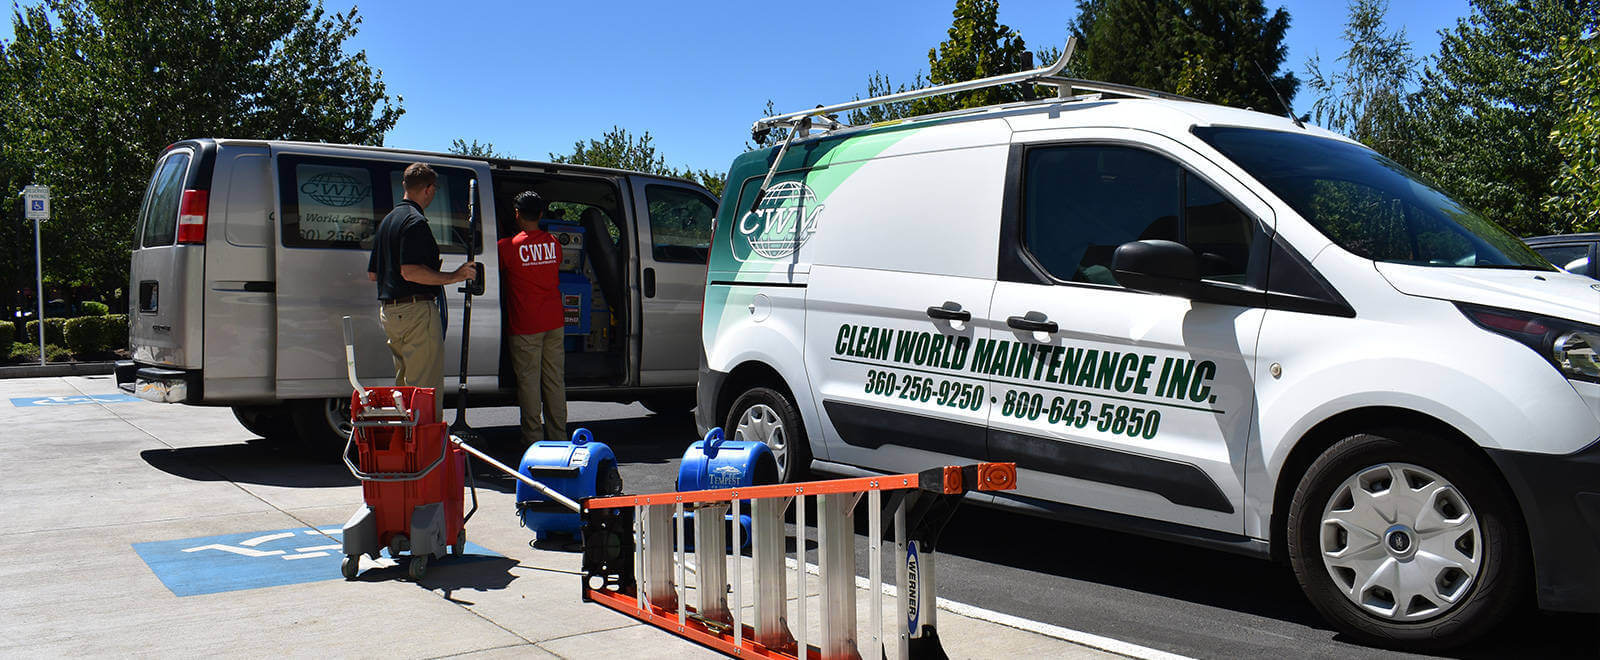 Improve your environment now, call Clean World Maintenance!